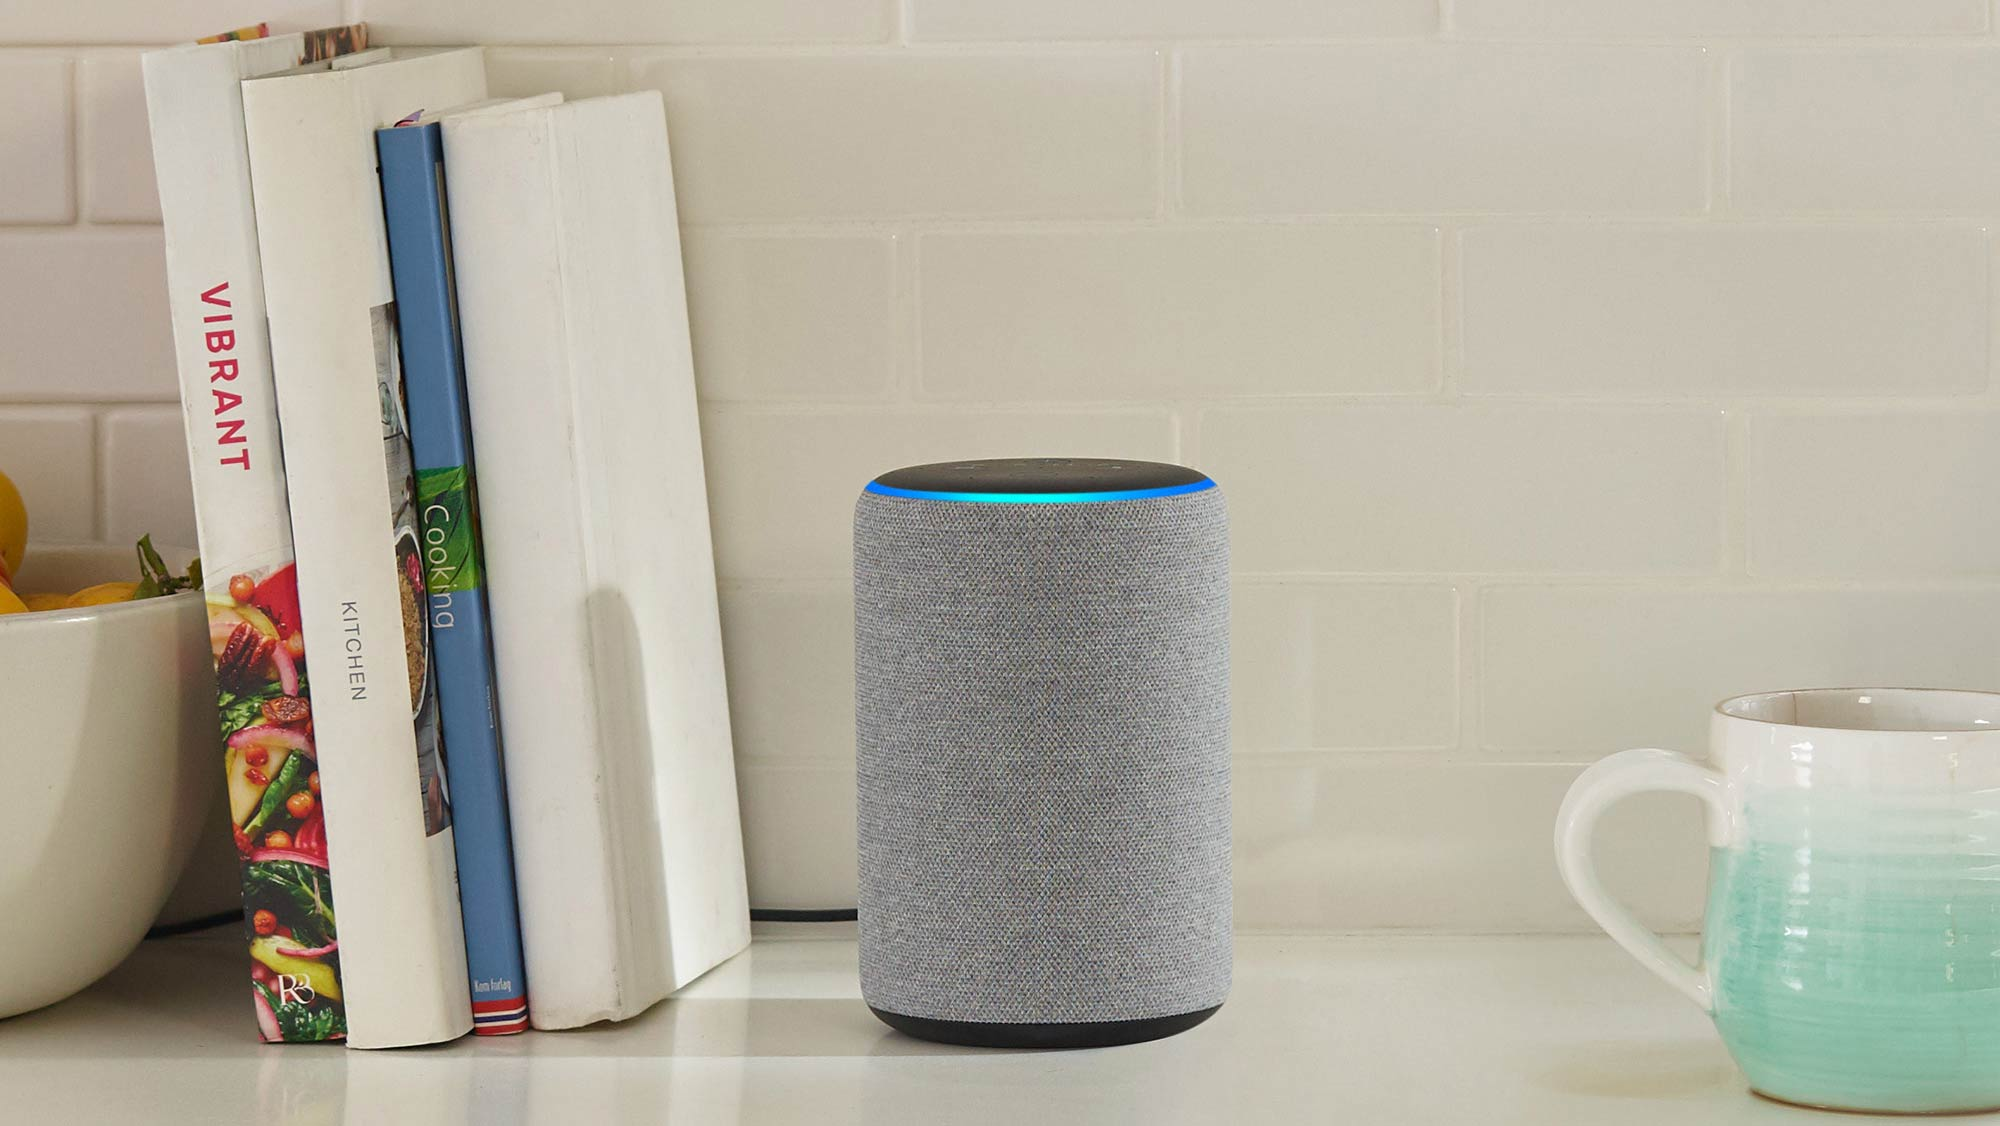 7a286050cec Smart speakers like the Amazon Echo have now become almost commonplace in  people's homes, and for good reason. These small voice-controlled gadgets  let you ...